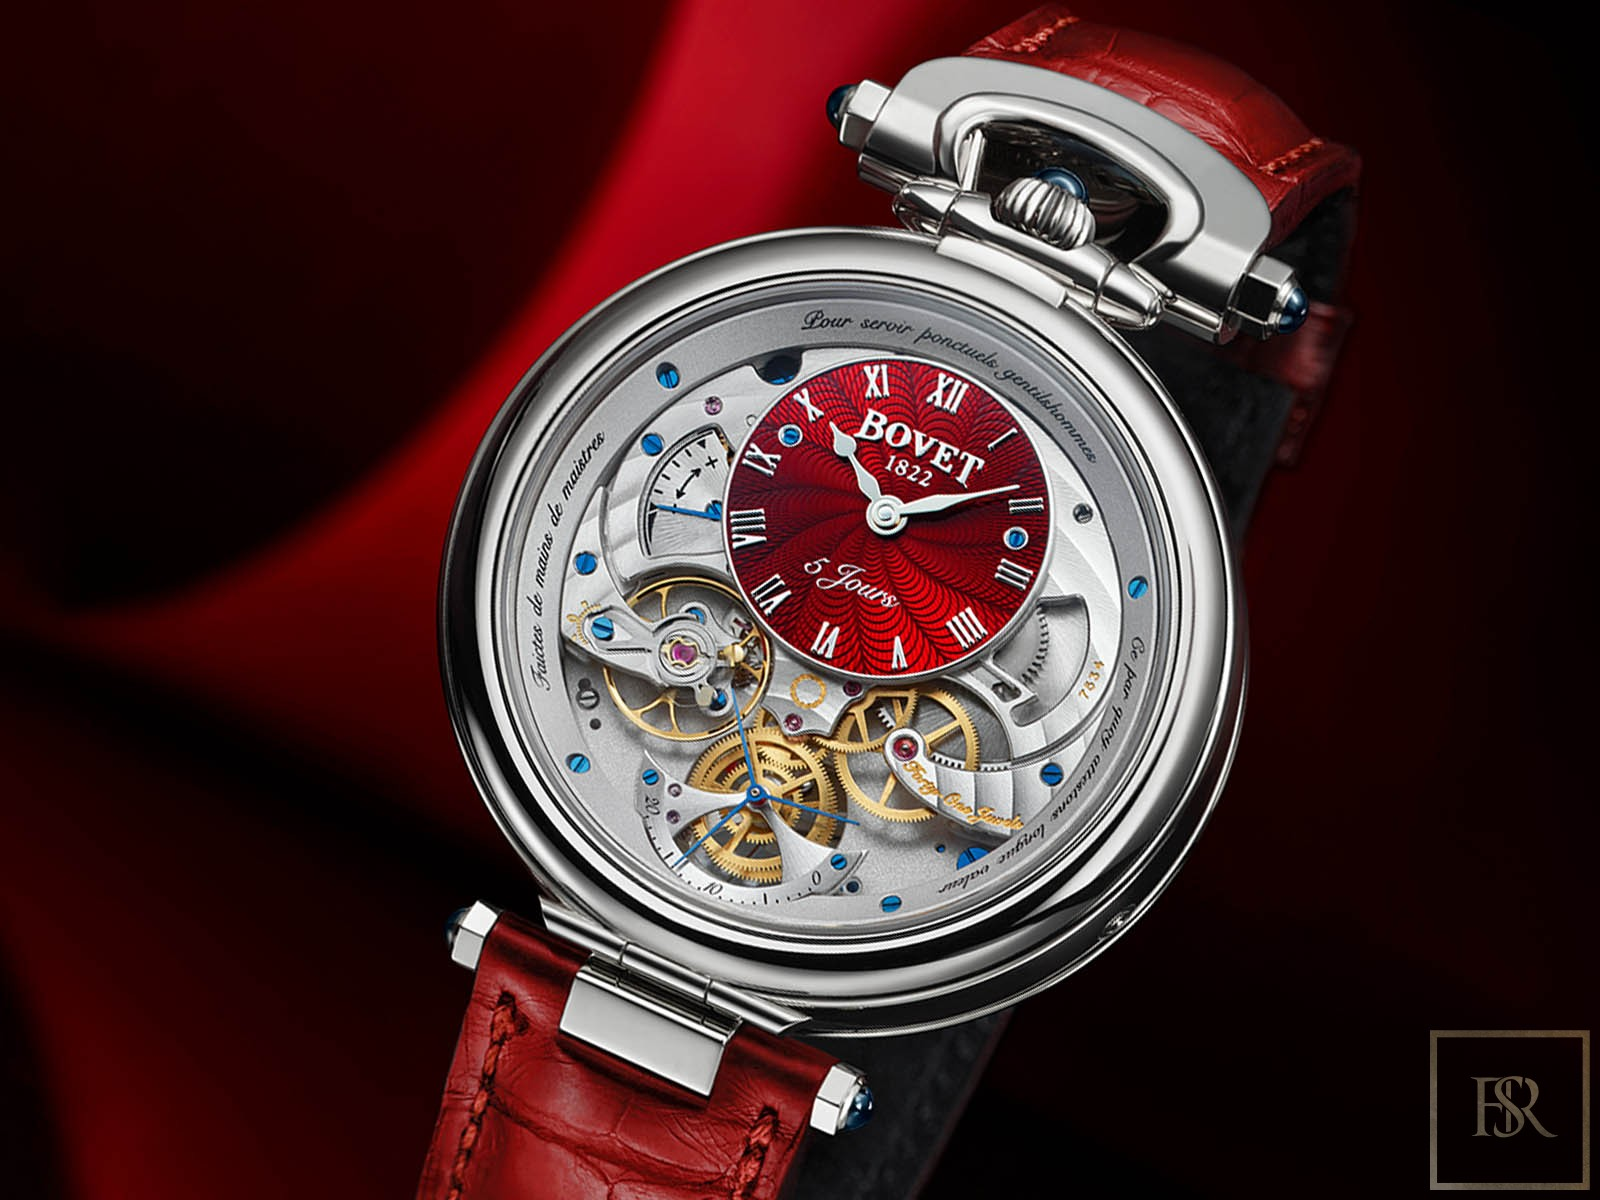 Watch Virtuoso VII Red 18K Gold - BOVET 1822 for sale For Super Rich